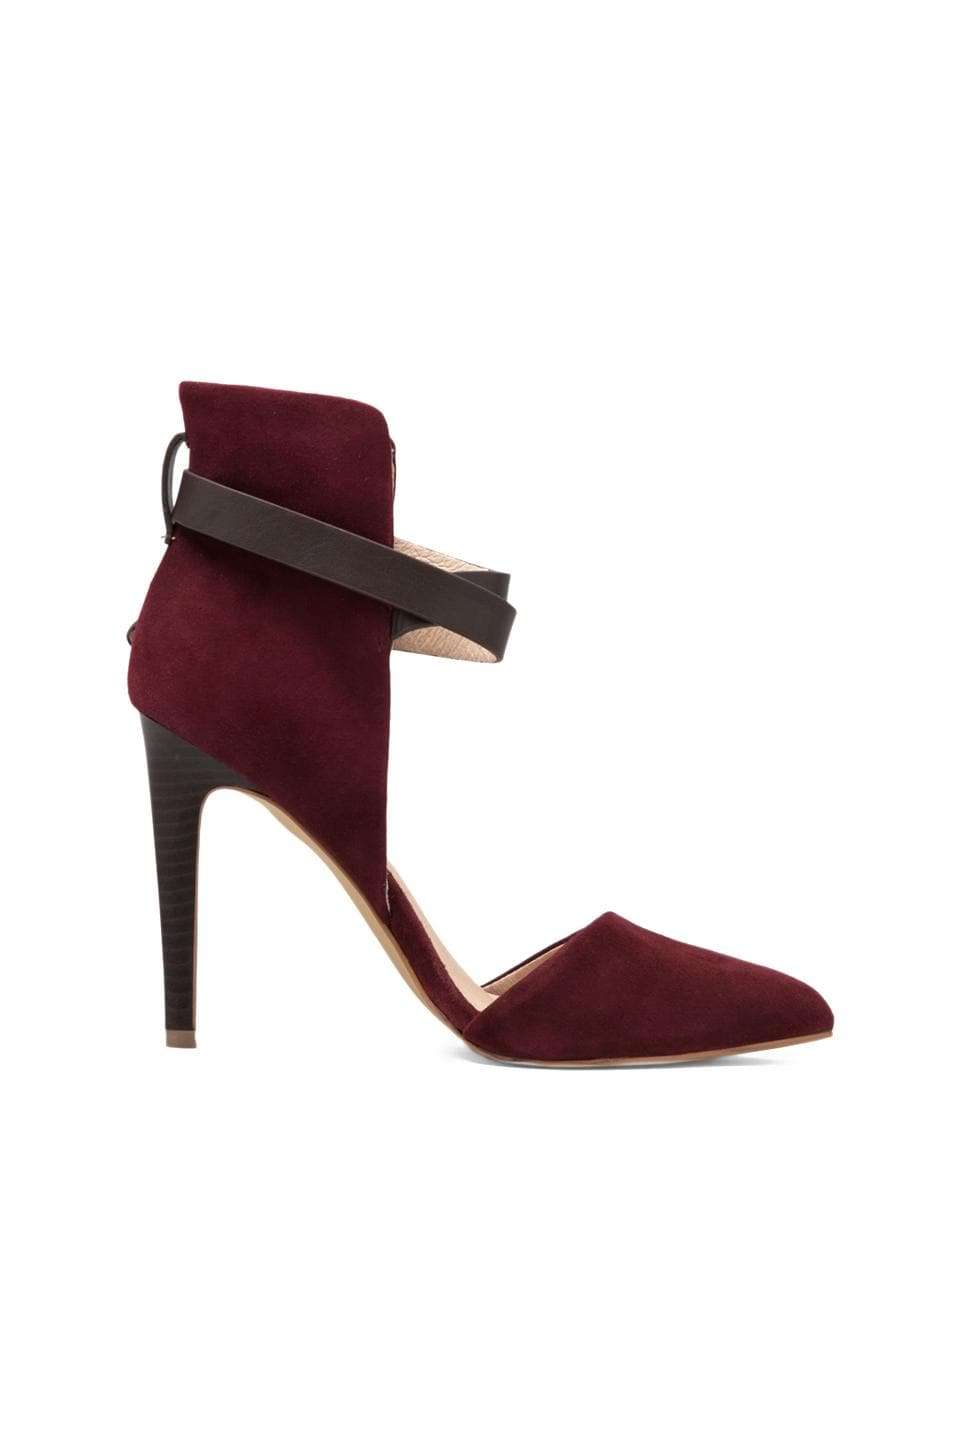 Joe's Jeans Laney Heel in Dark Red